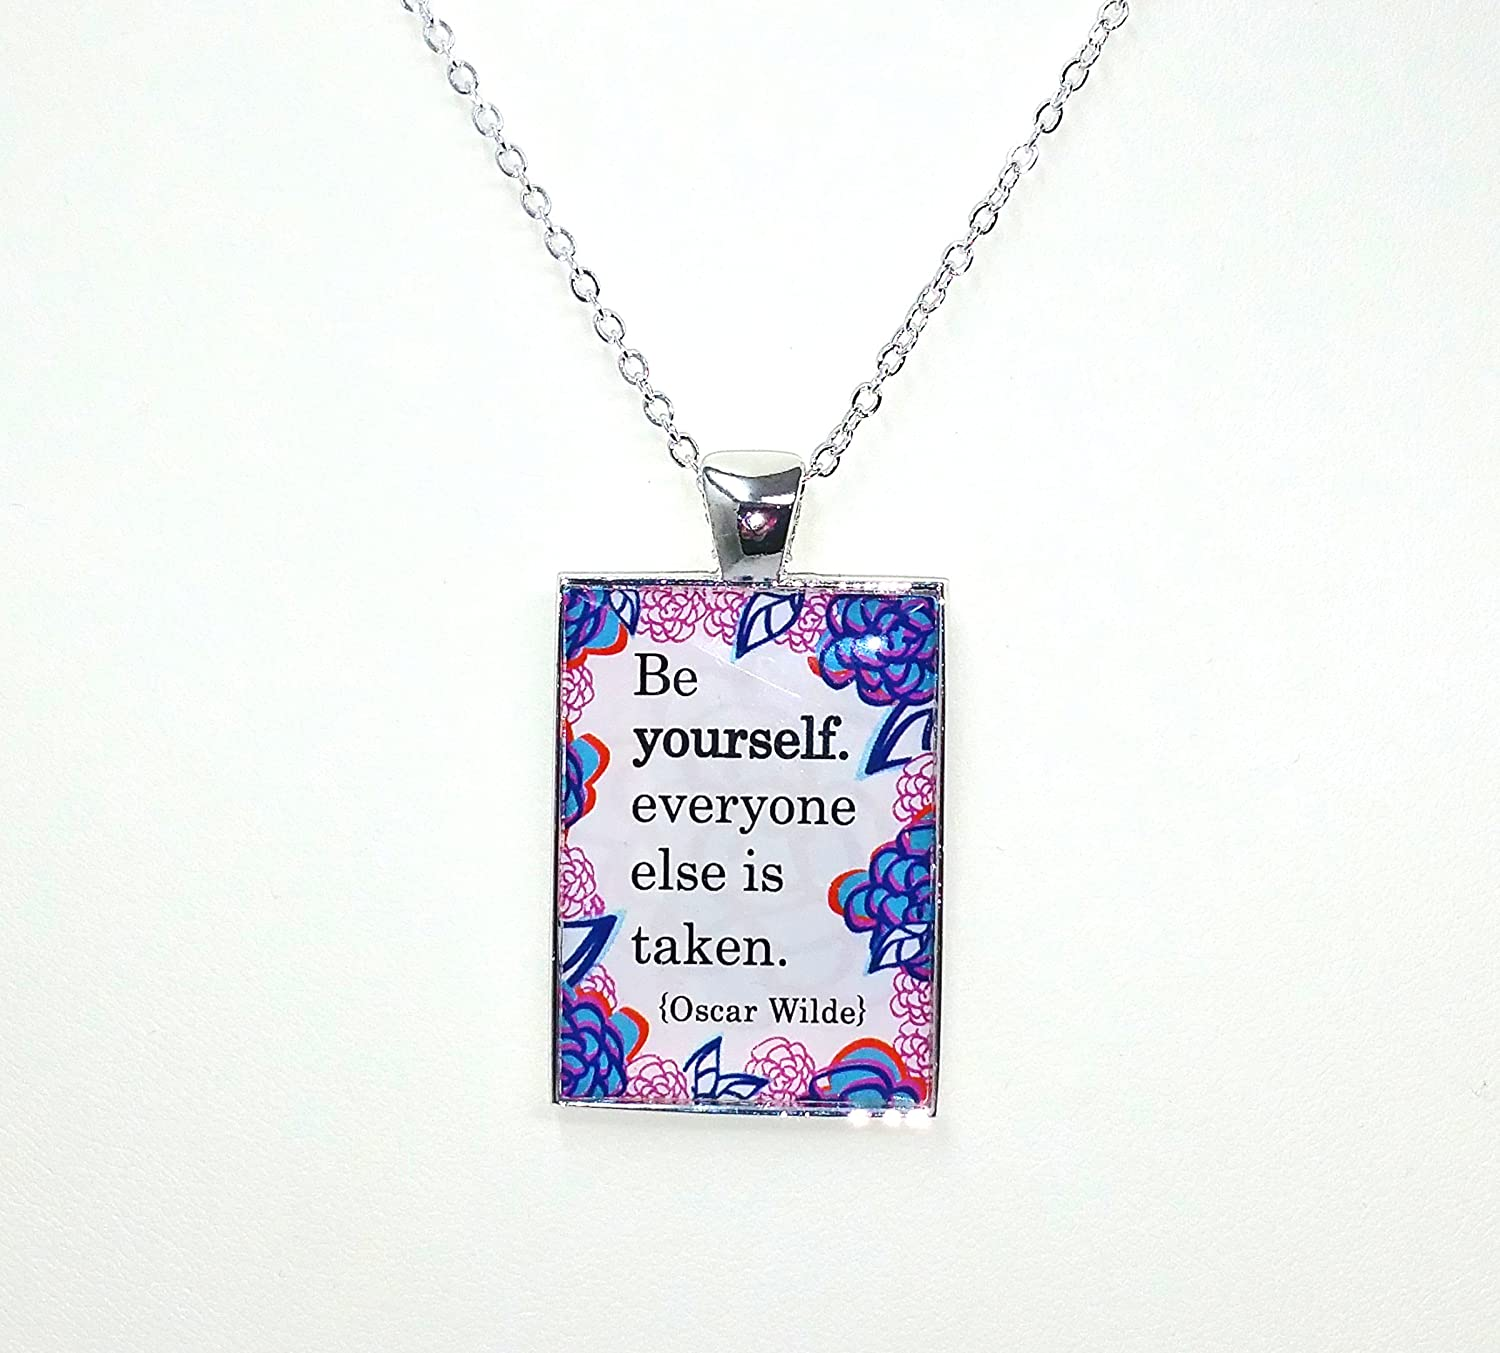 Oscar Wilde Quote Necklace - Be yourself, everyone else is taken